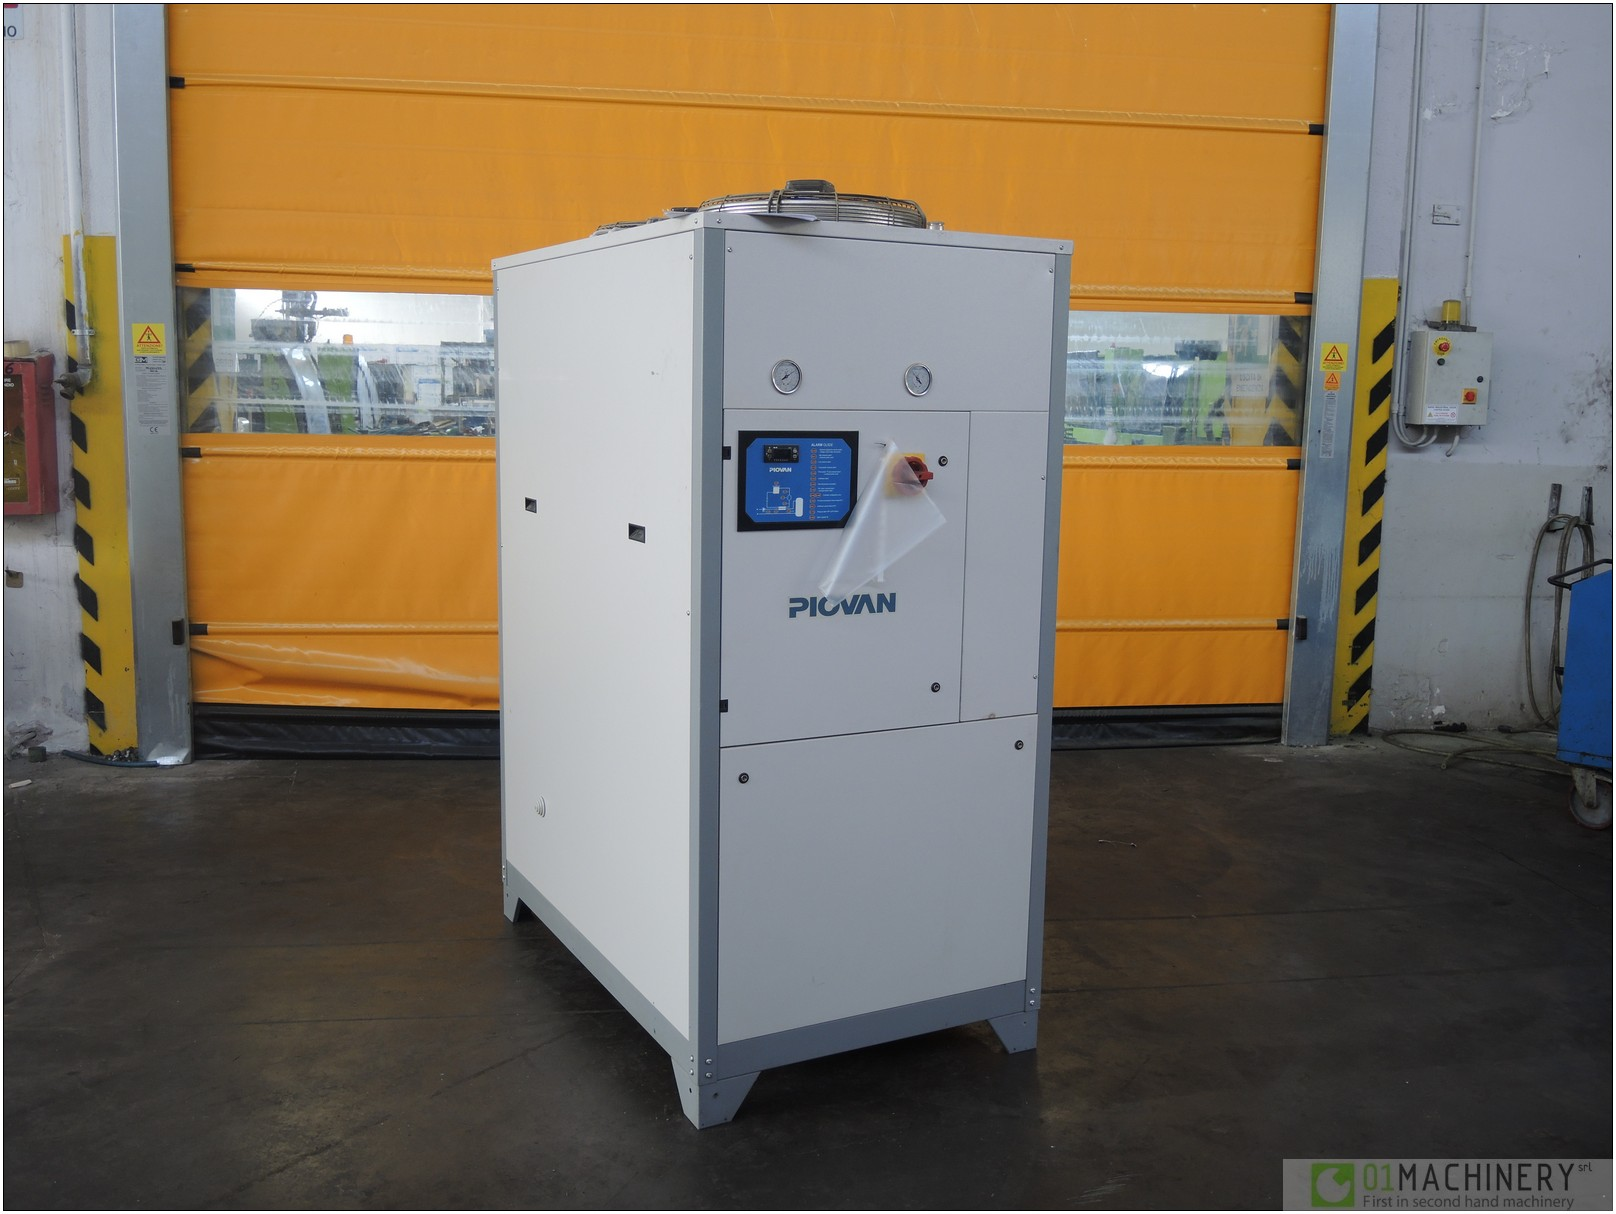 Piovan Ch 380 Ac Pv 000 14 Used Chillers Machinery